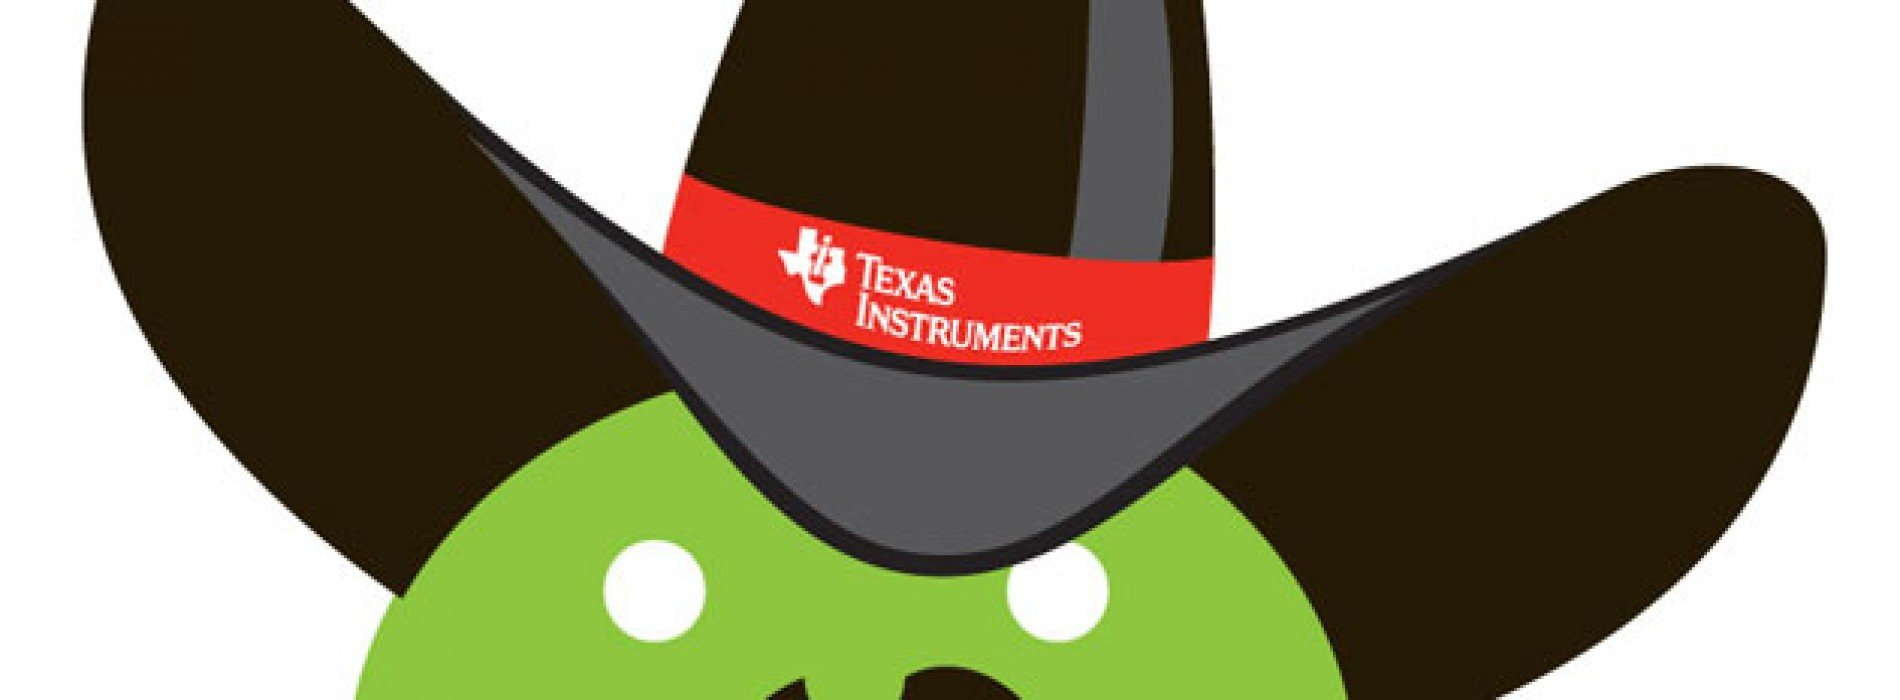 Texas Instruments Gearing Up for a New 3D Experience with Me-D